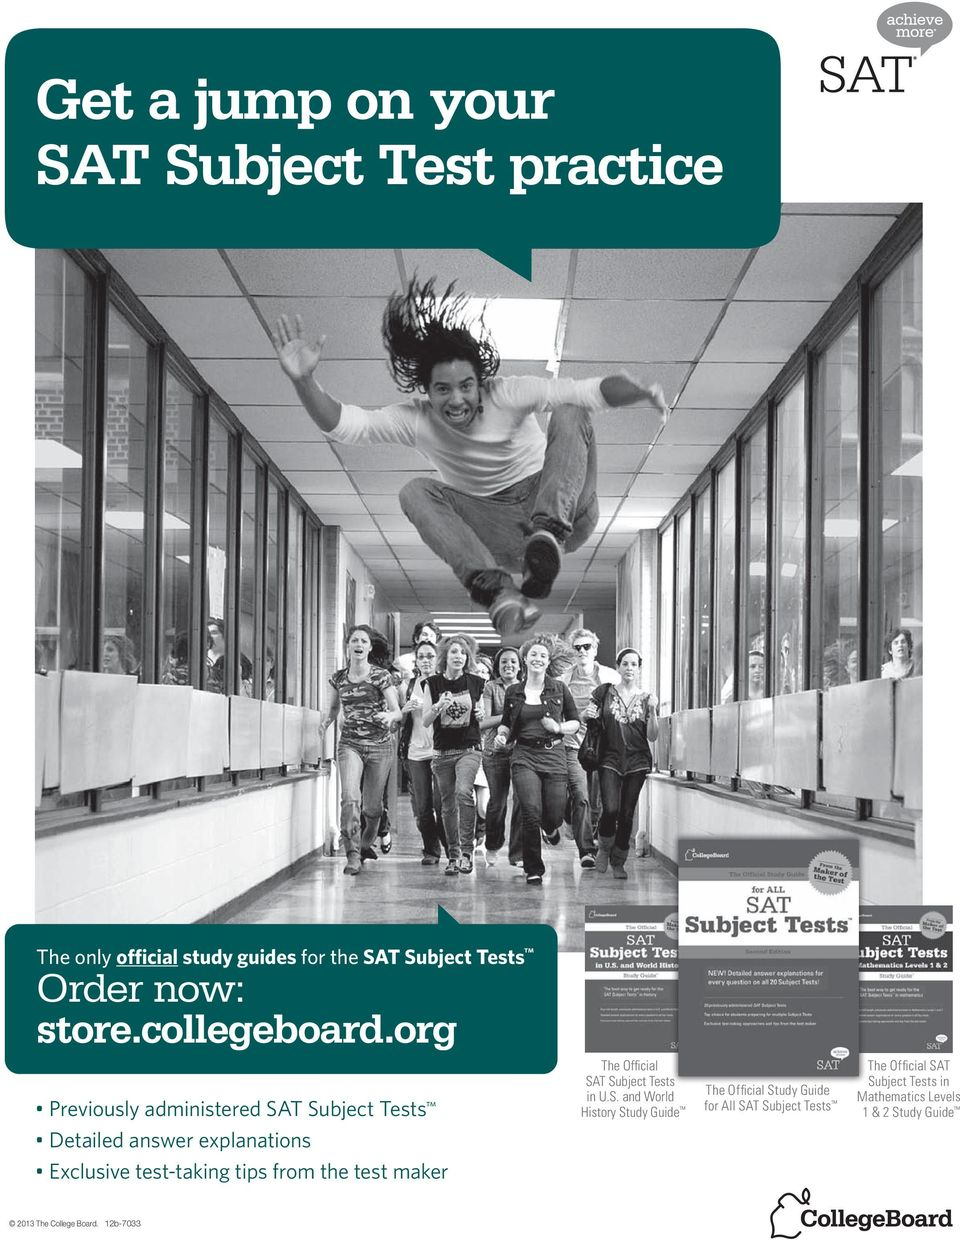 org Previously administered SAT Subject Tests Detailed answer explanations Exclusive test-taking tips from the test